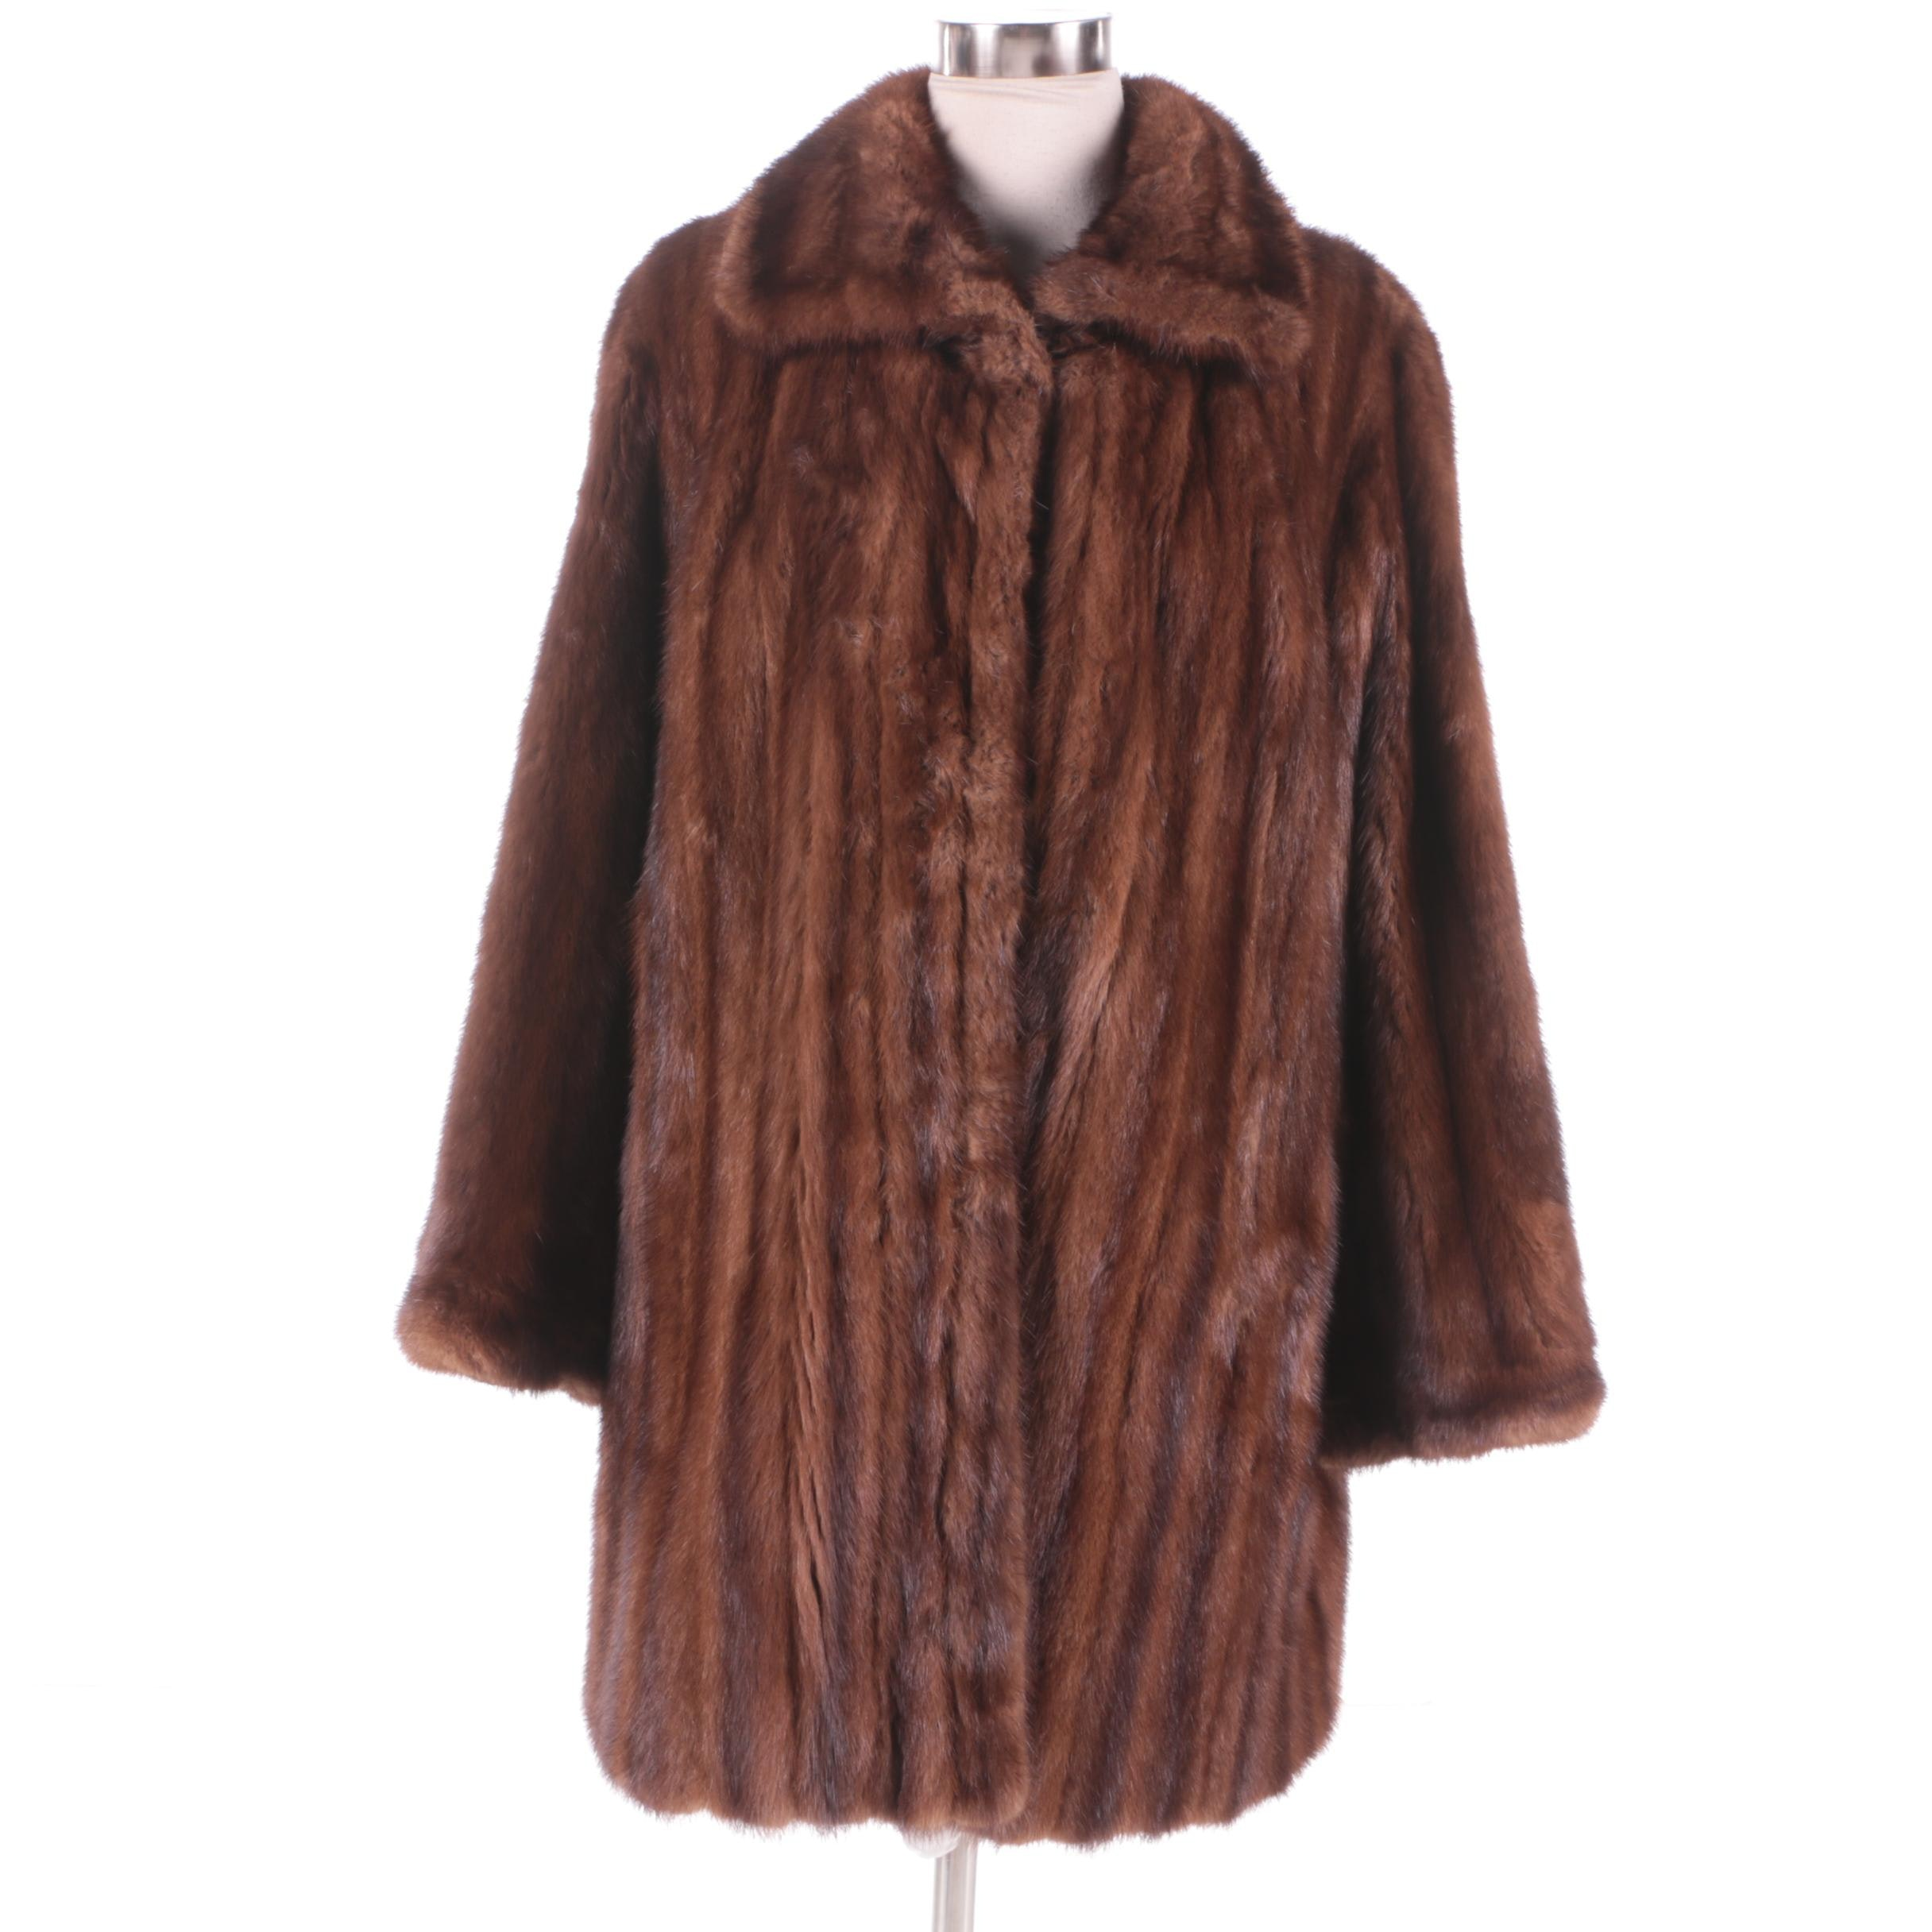 Women's Vintage Mahogany Brown Mink Fur Coat